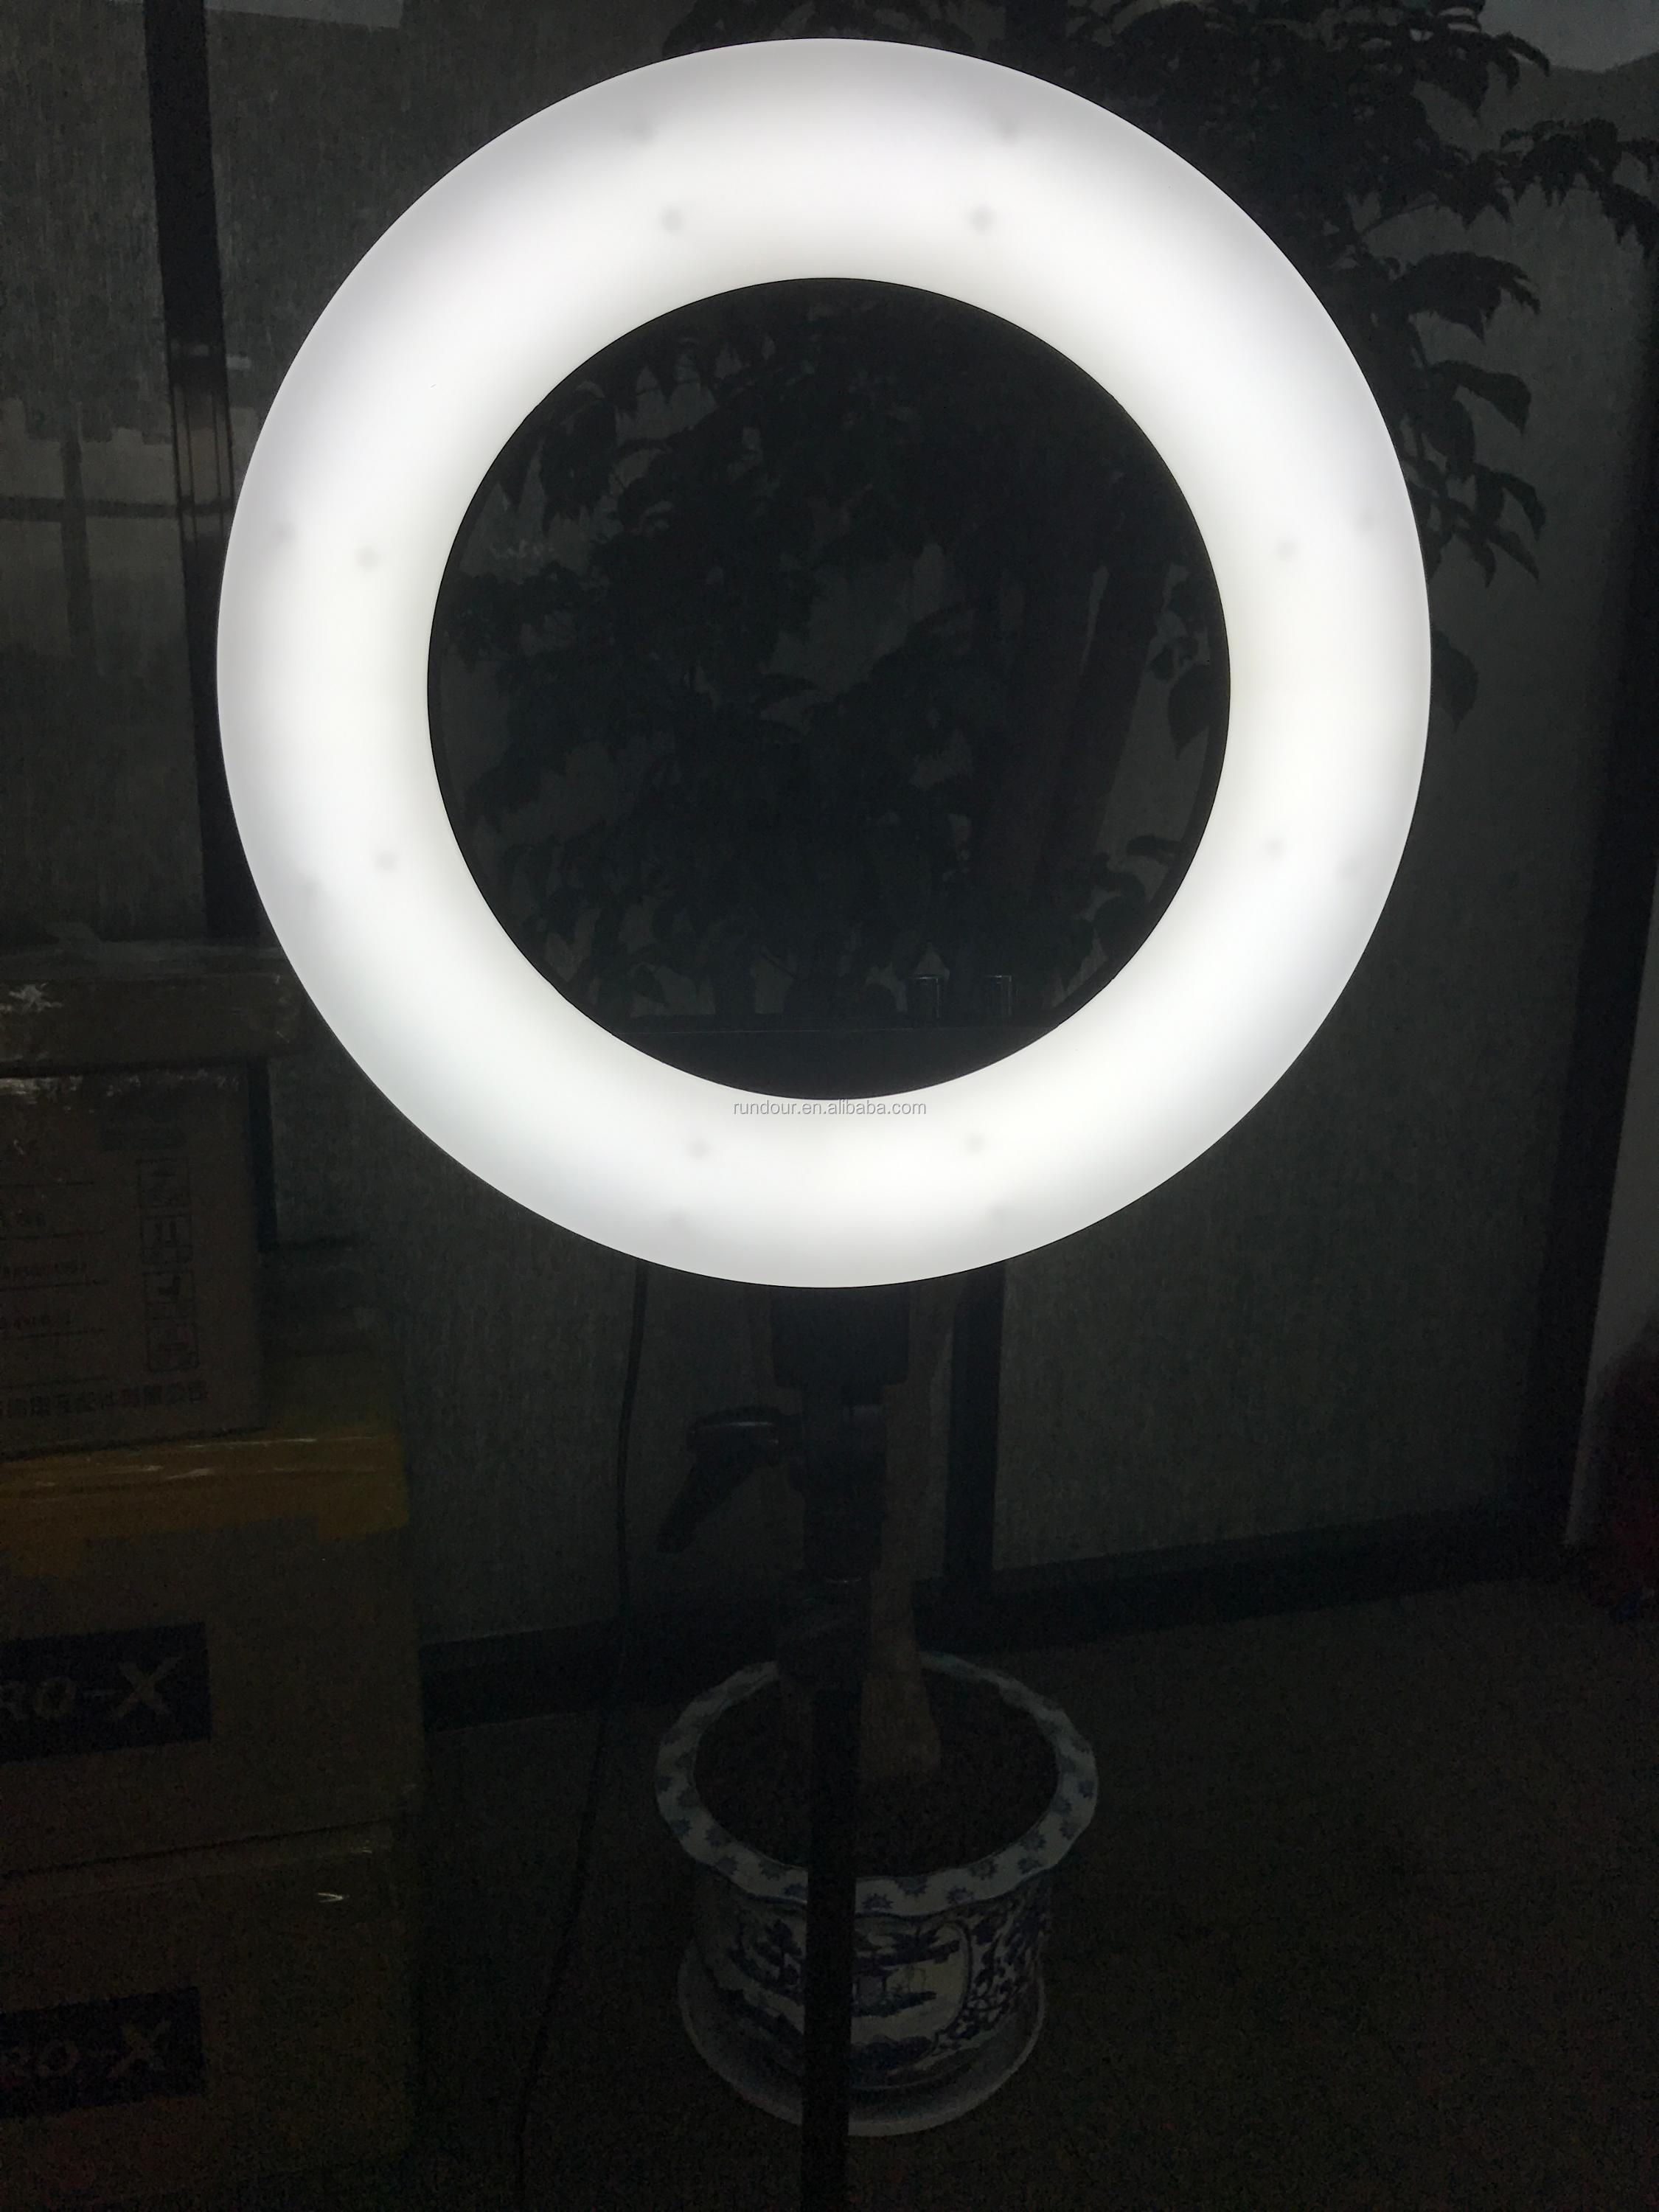 Rundour CY-R50L 18inch Photography ring light led lamp 3200-5600k 50w photo studio flourascent light